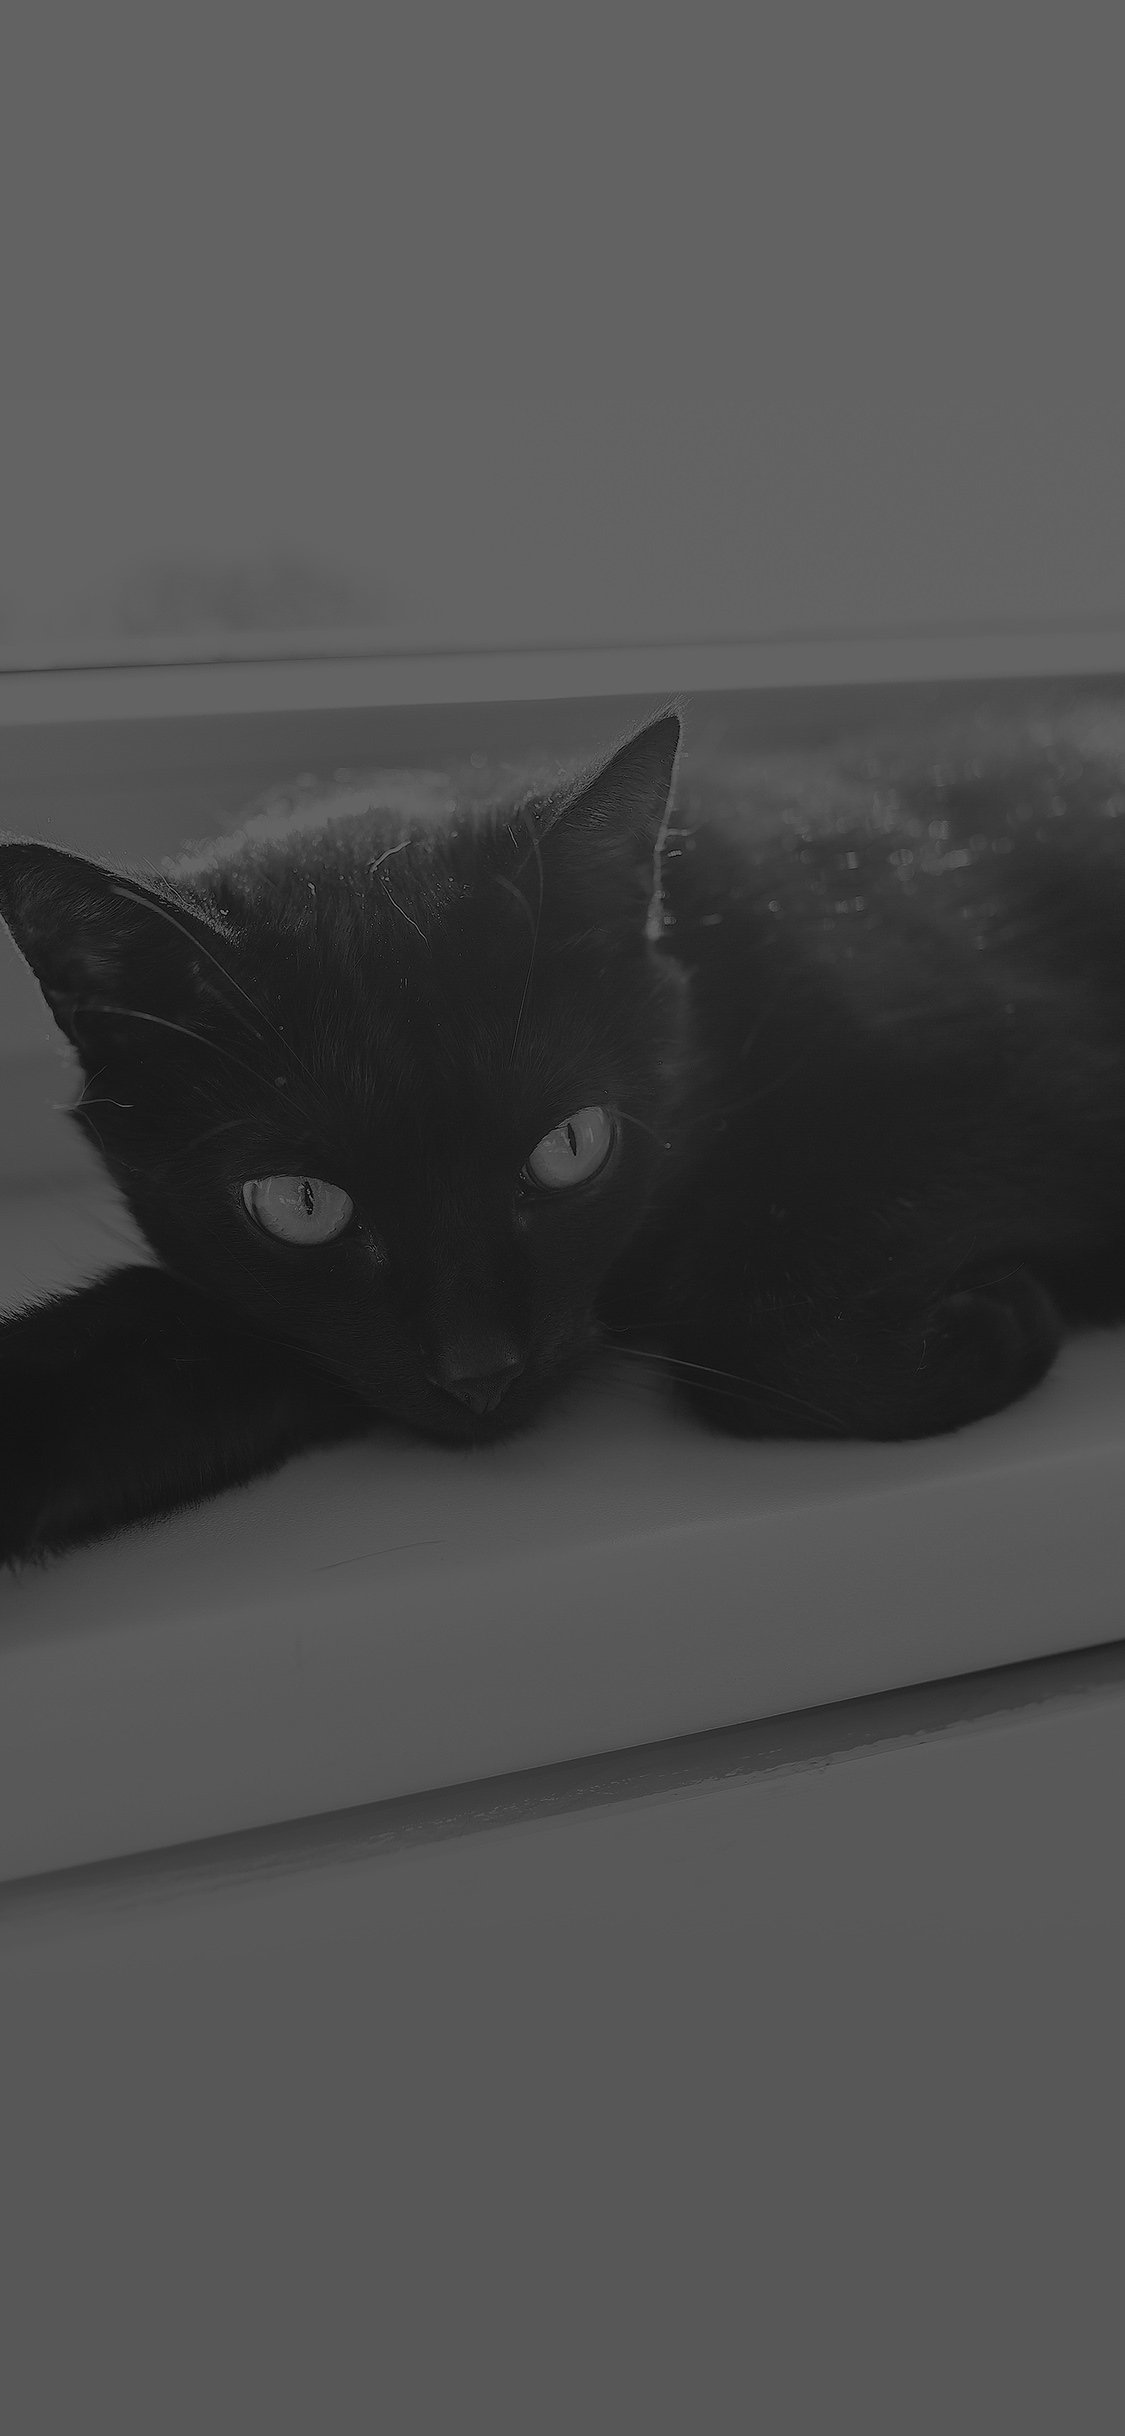 Mv33 Black Cat Animal Cute Watching Dark Bw Wallpaper